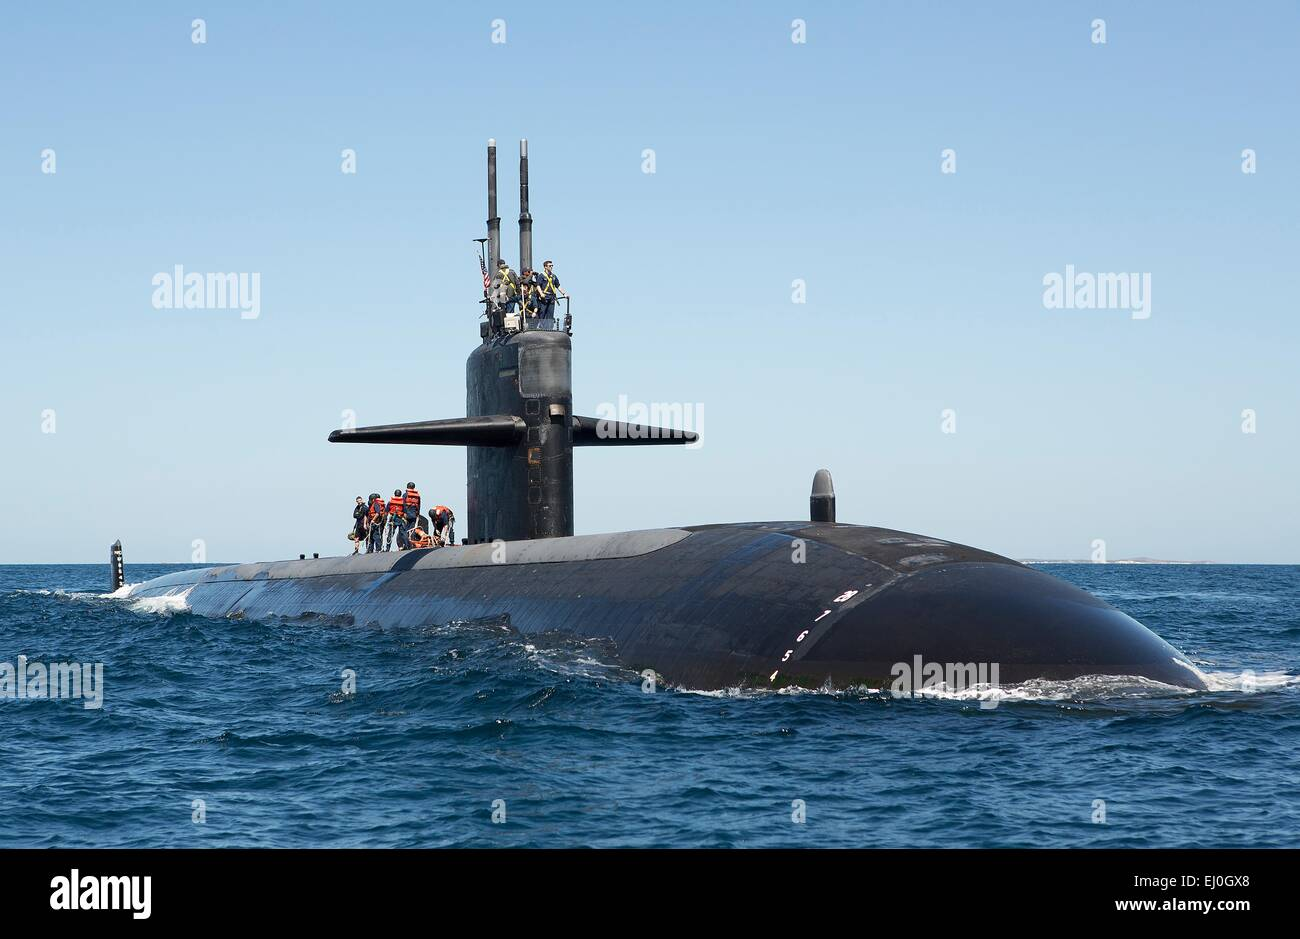 The US Navy Los Angeles-class fast attack submarine USS Albuquerque transfers personnel during exercise Lungfish - Stock Image